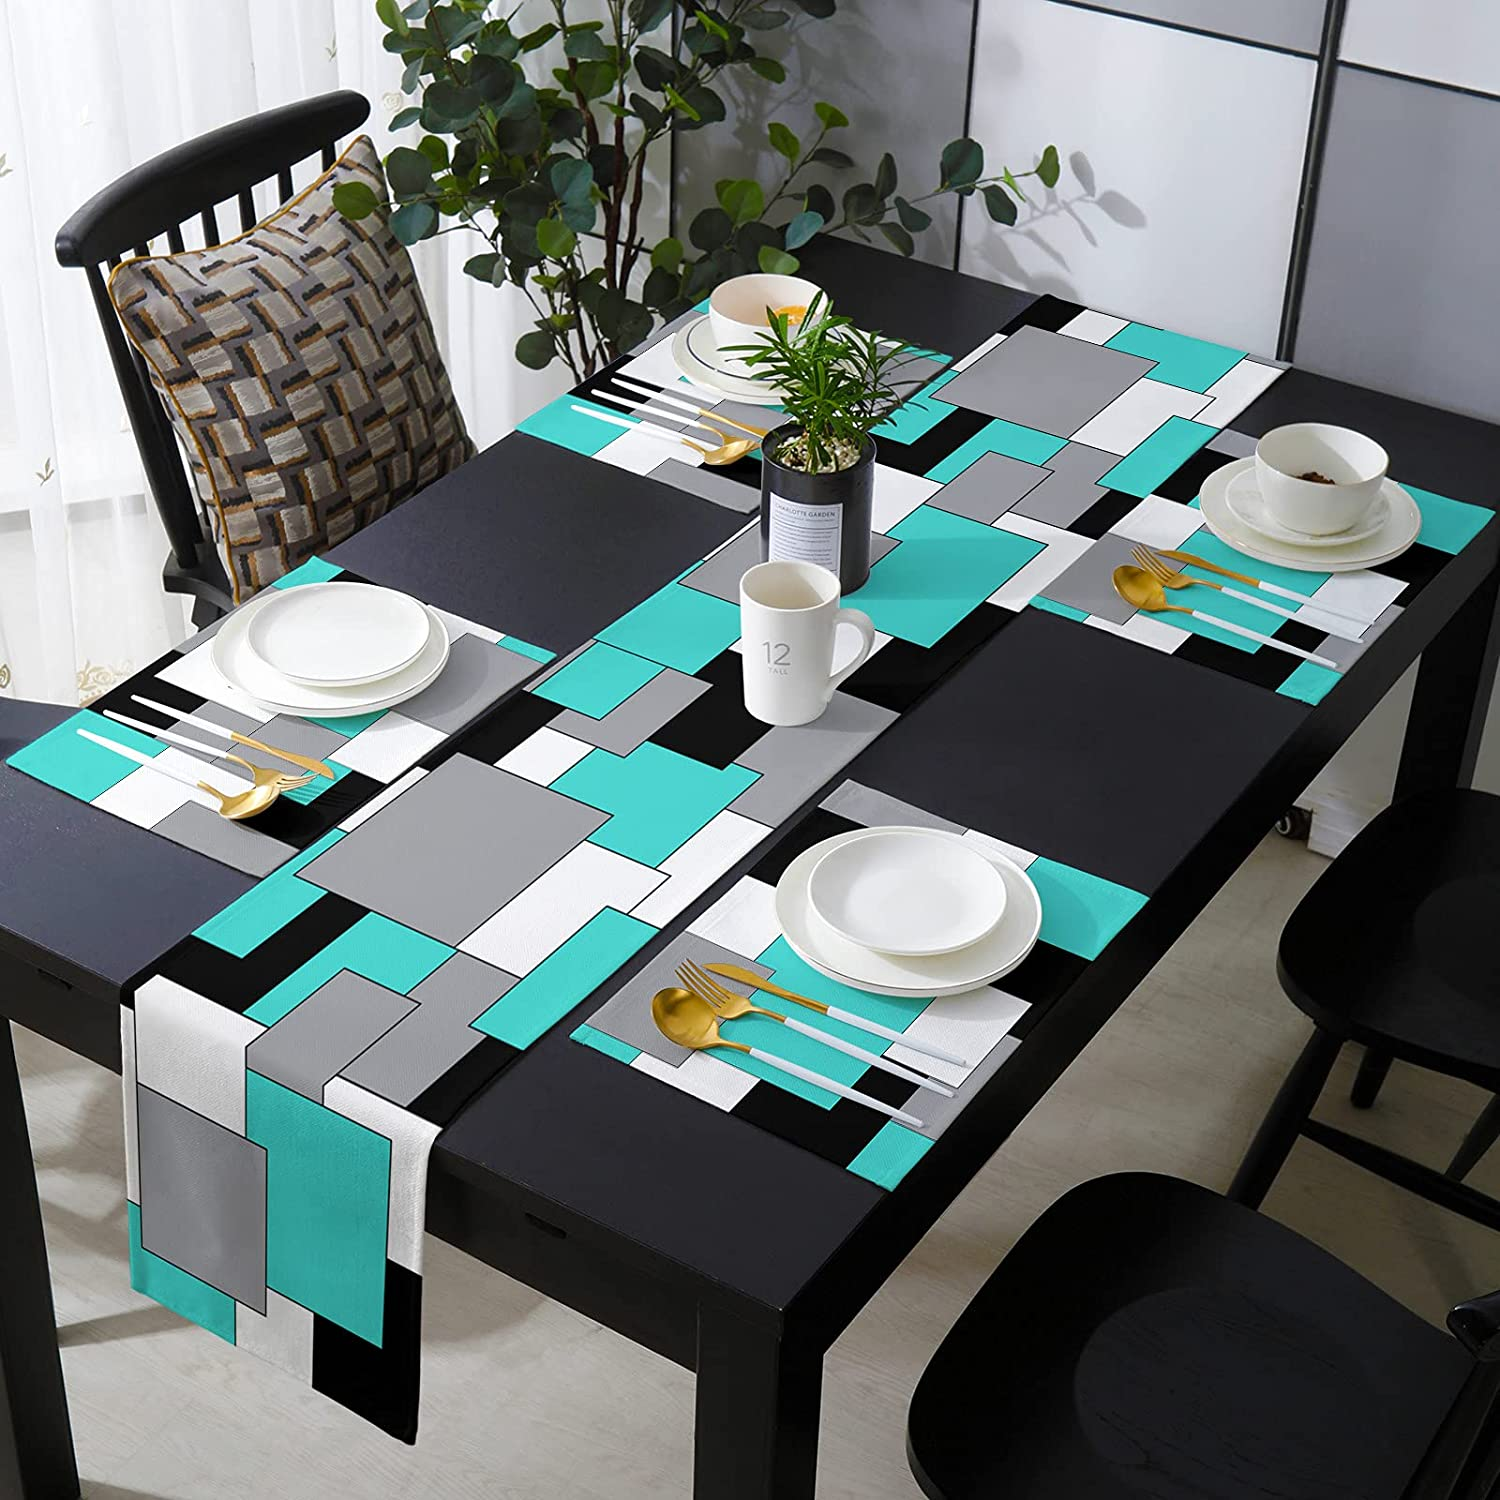 Savannan Burlap Popular product Placemat with Compatible Centu Product Runner Mid Table